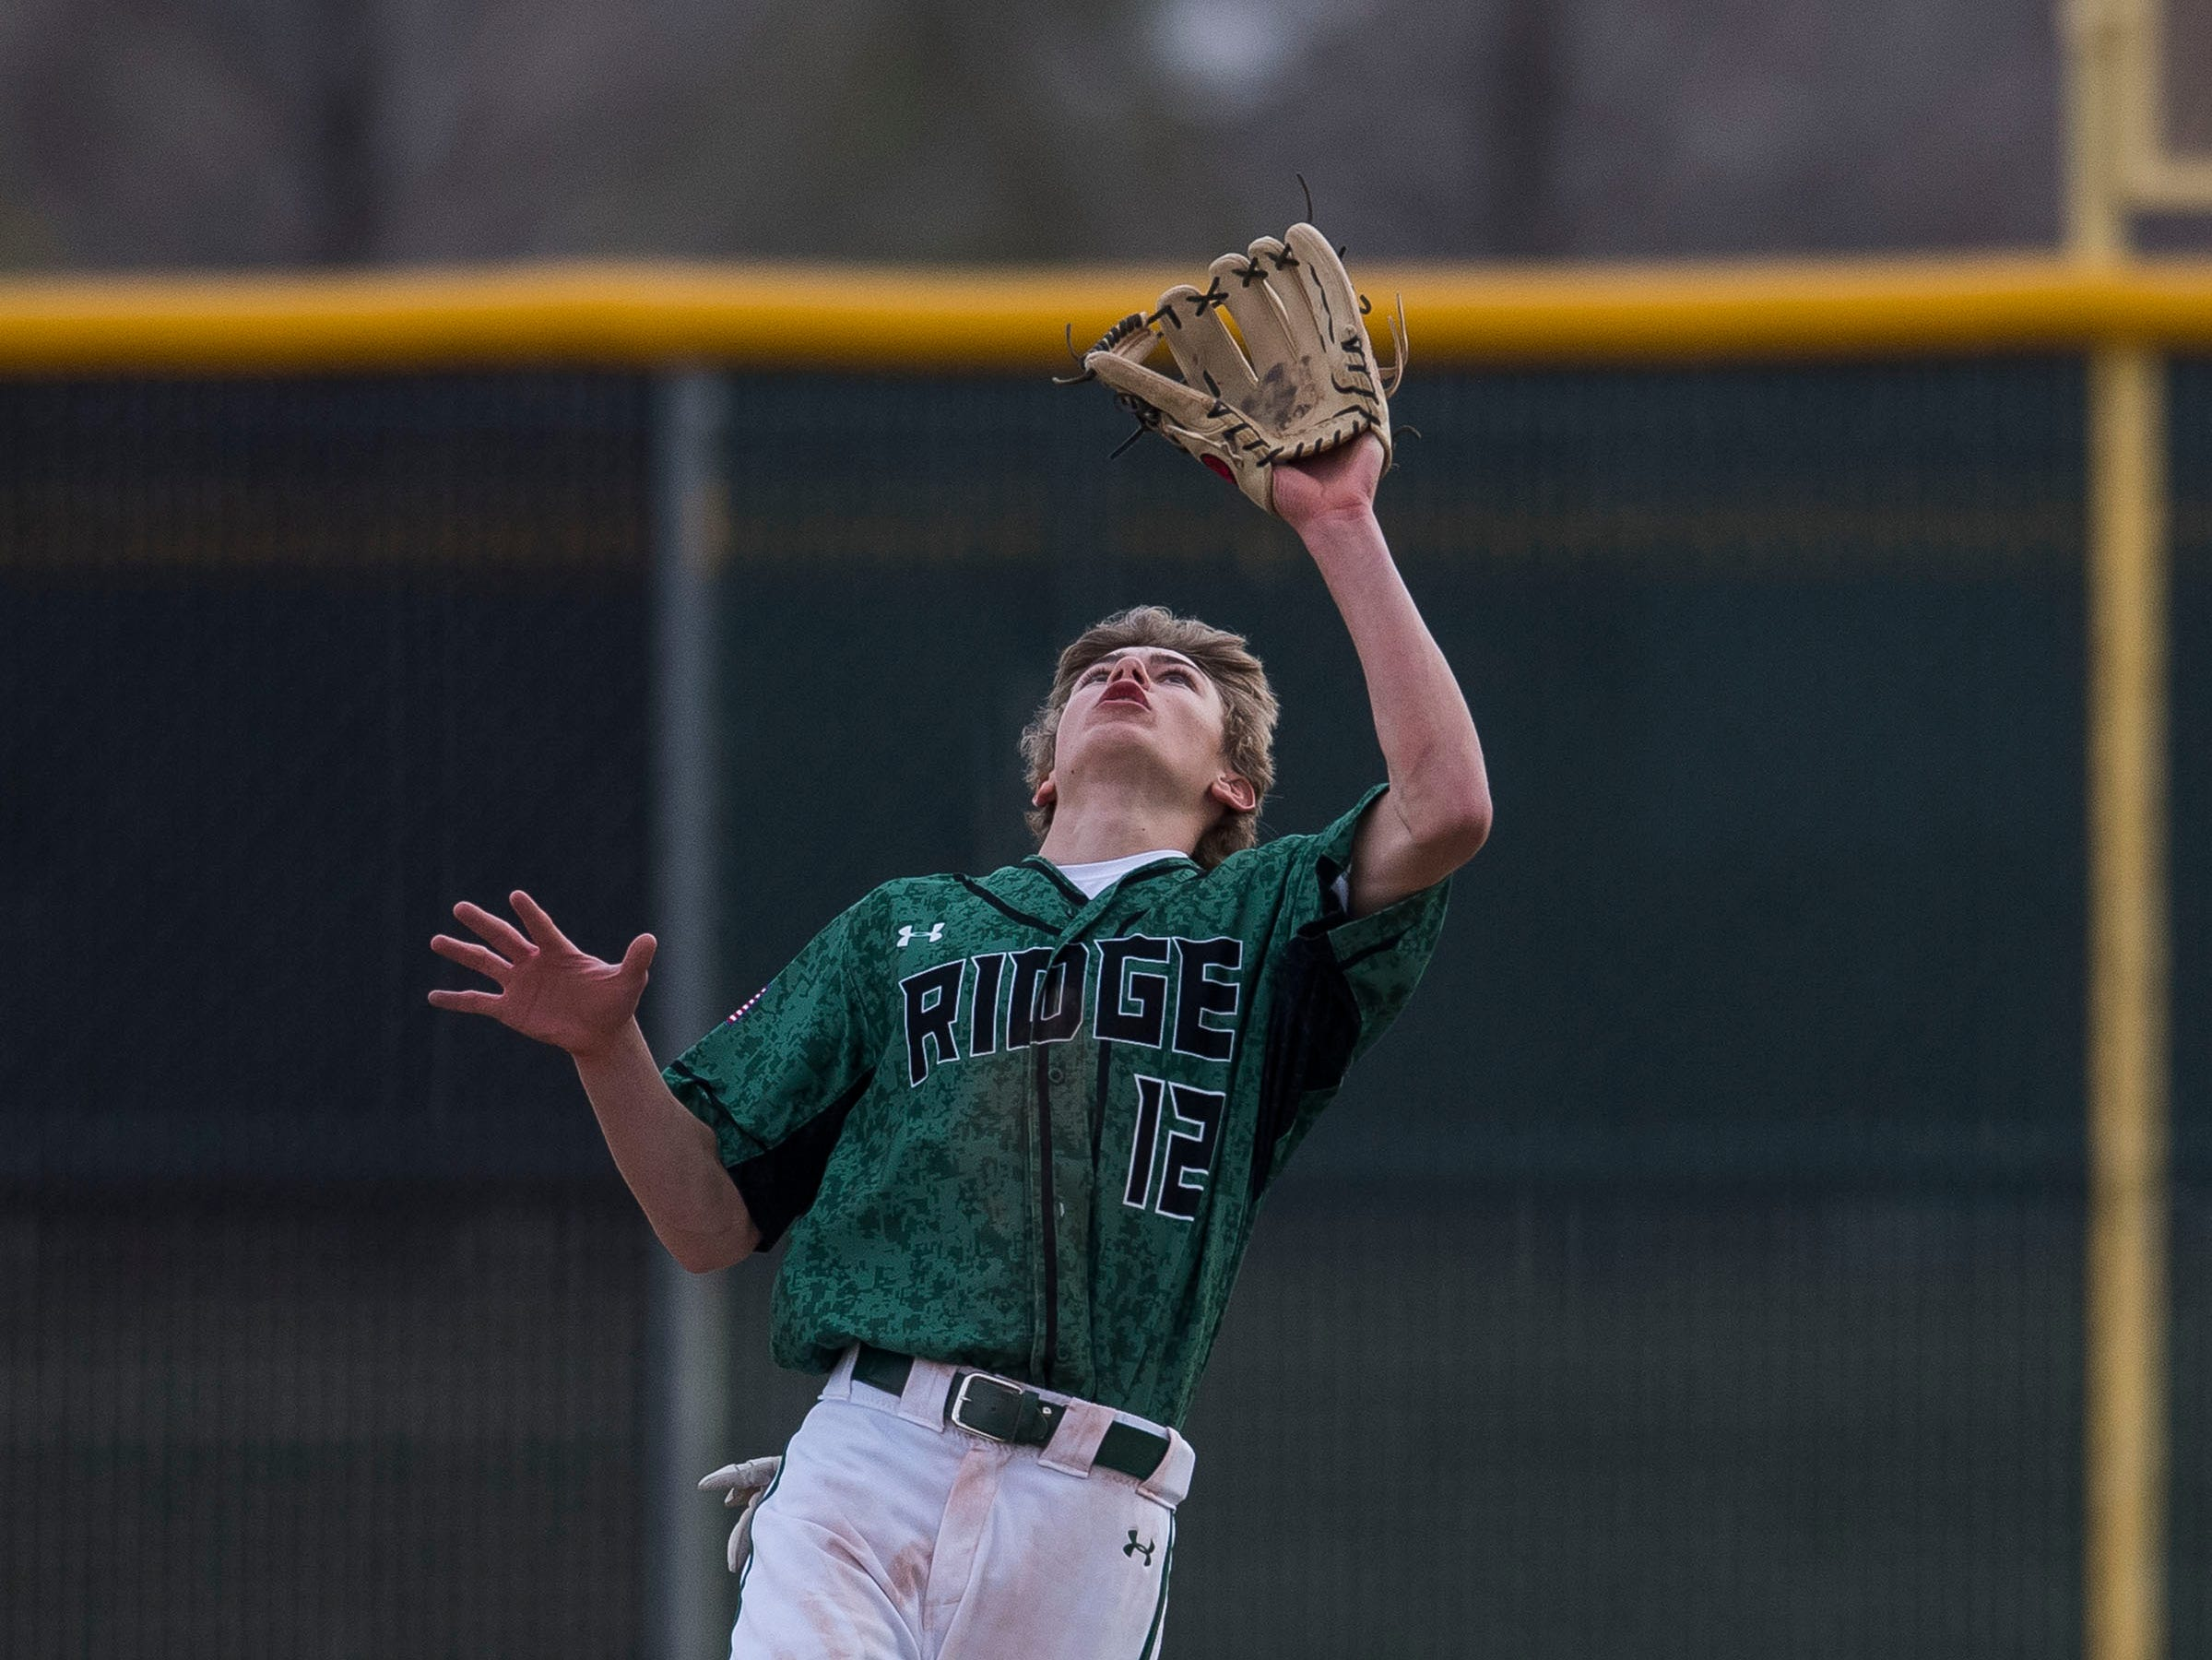 Fossil Ridge High School outfielder Ridge Bowolick (12) looks in a fly foul ball after losing his hat during a game against Poudre High School on Wednesday, April 3, 2019, at Fossil Ridge High School in Fort Collins, Colo.